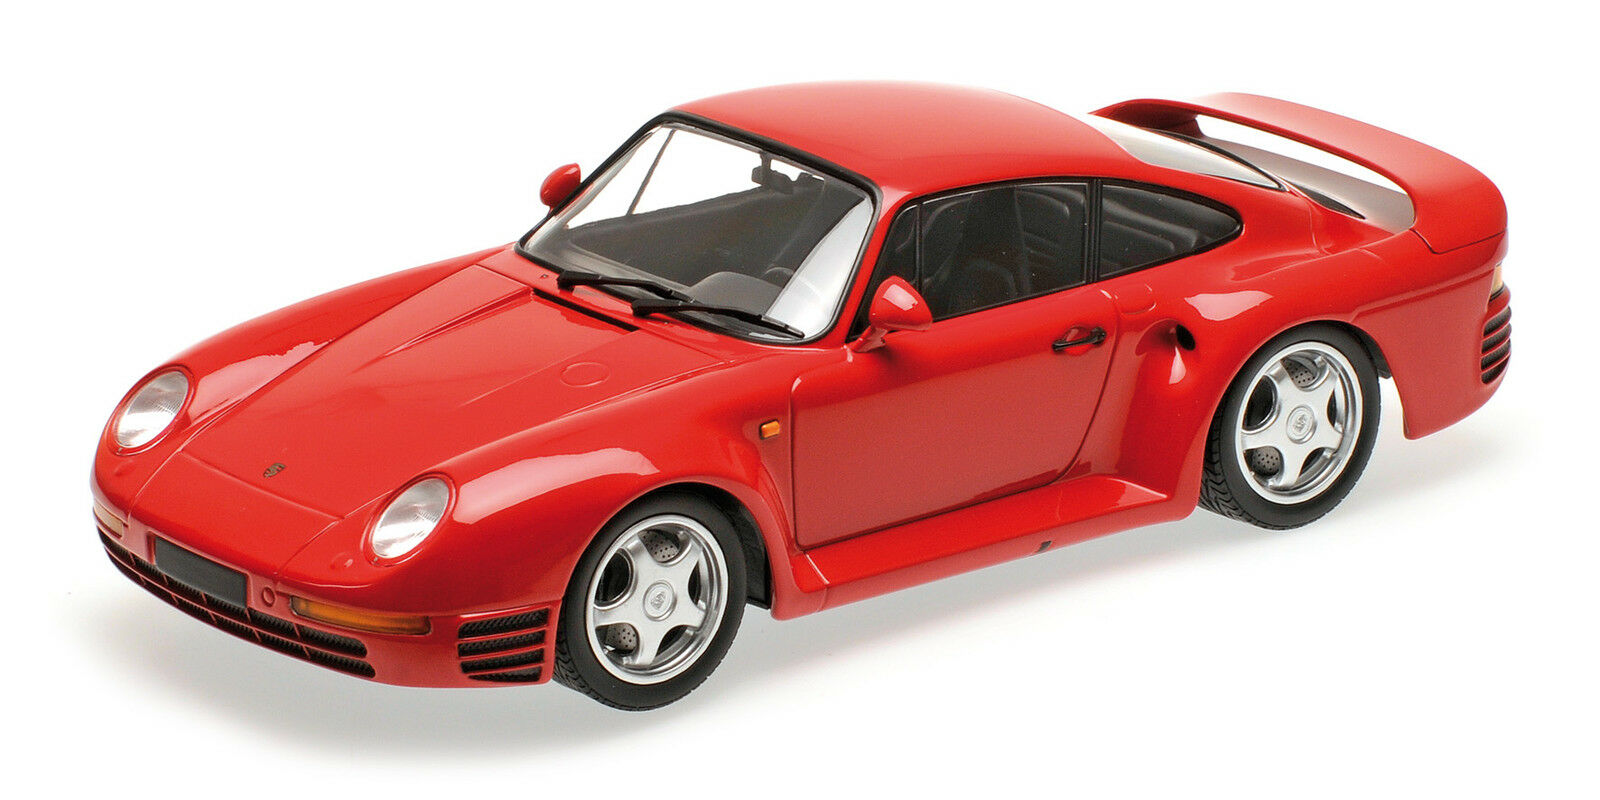 Porsche 959 Red 1987 1:18 Model MINICHAMPS